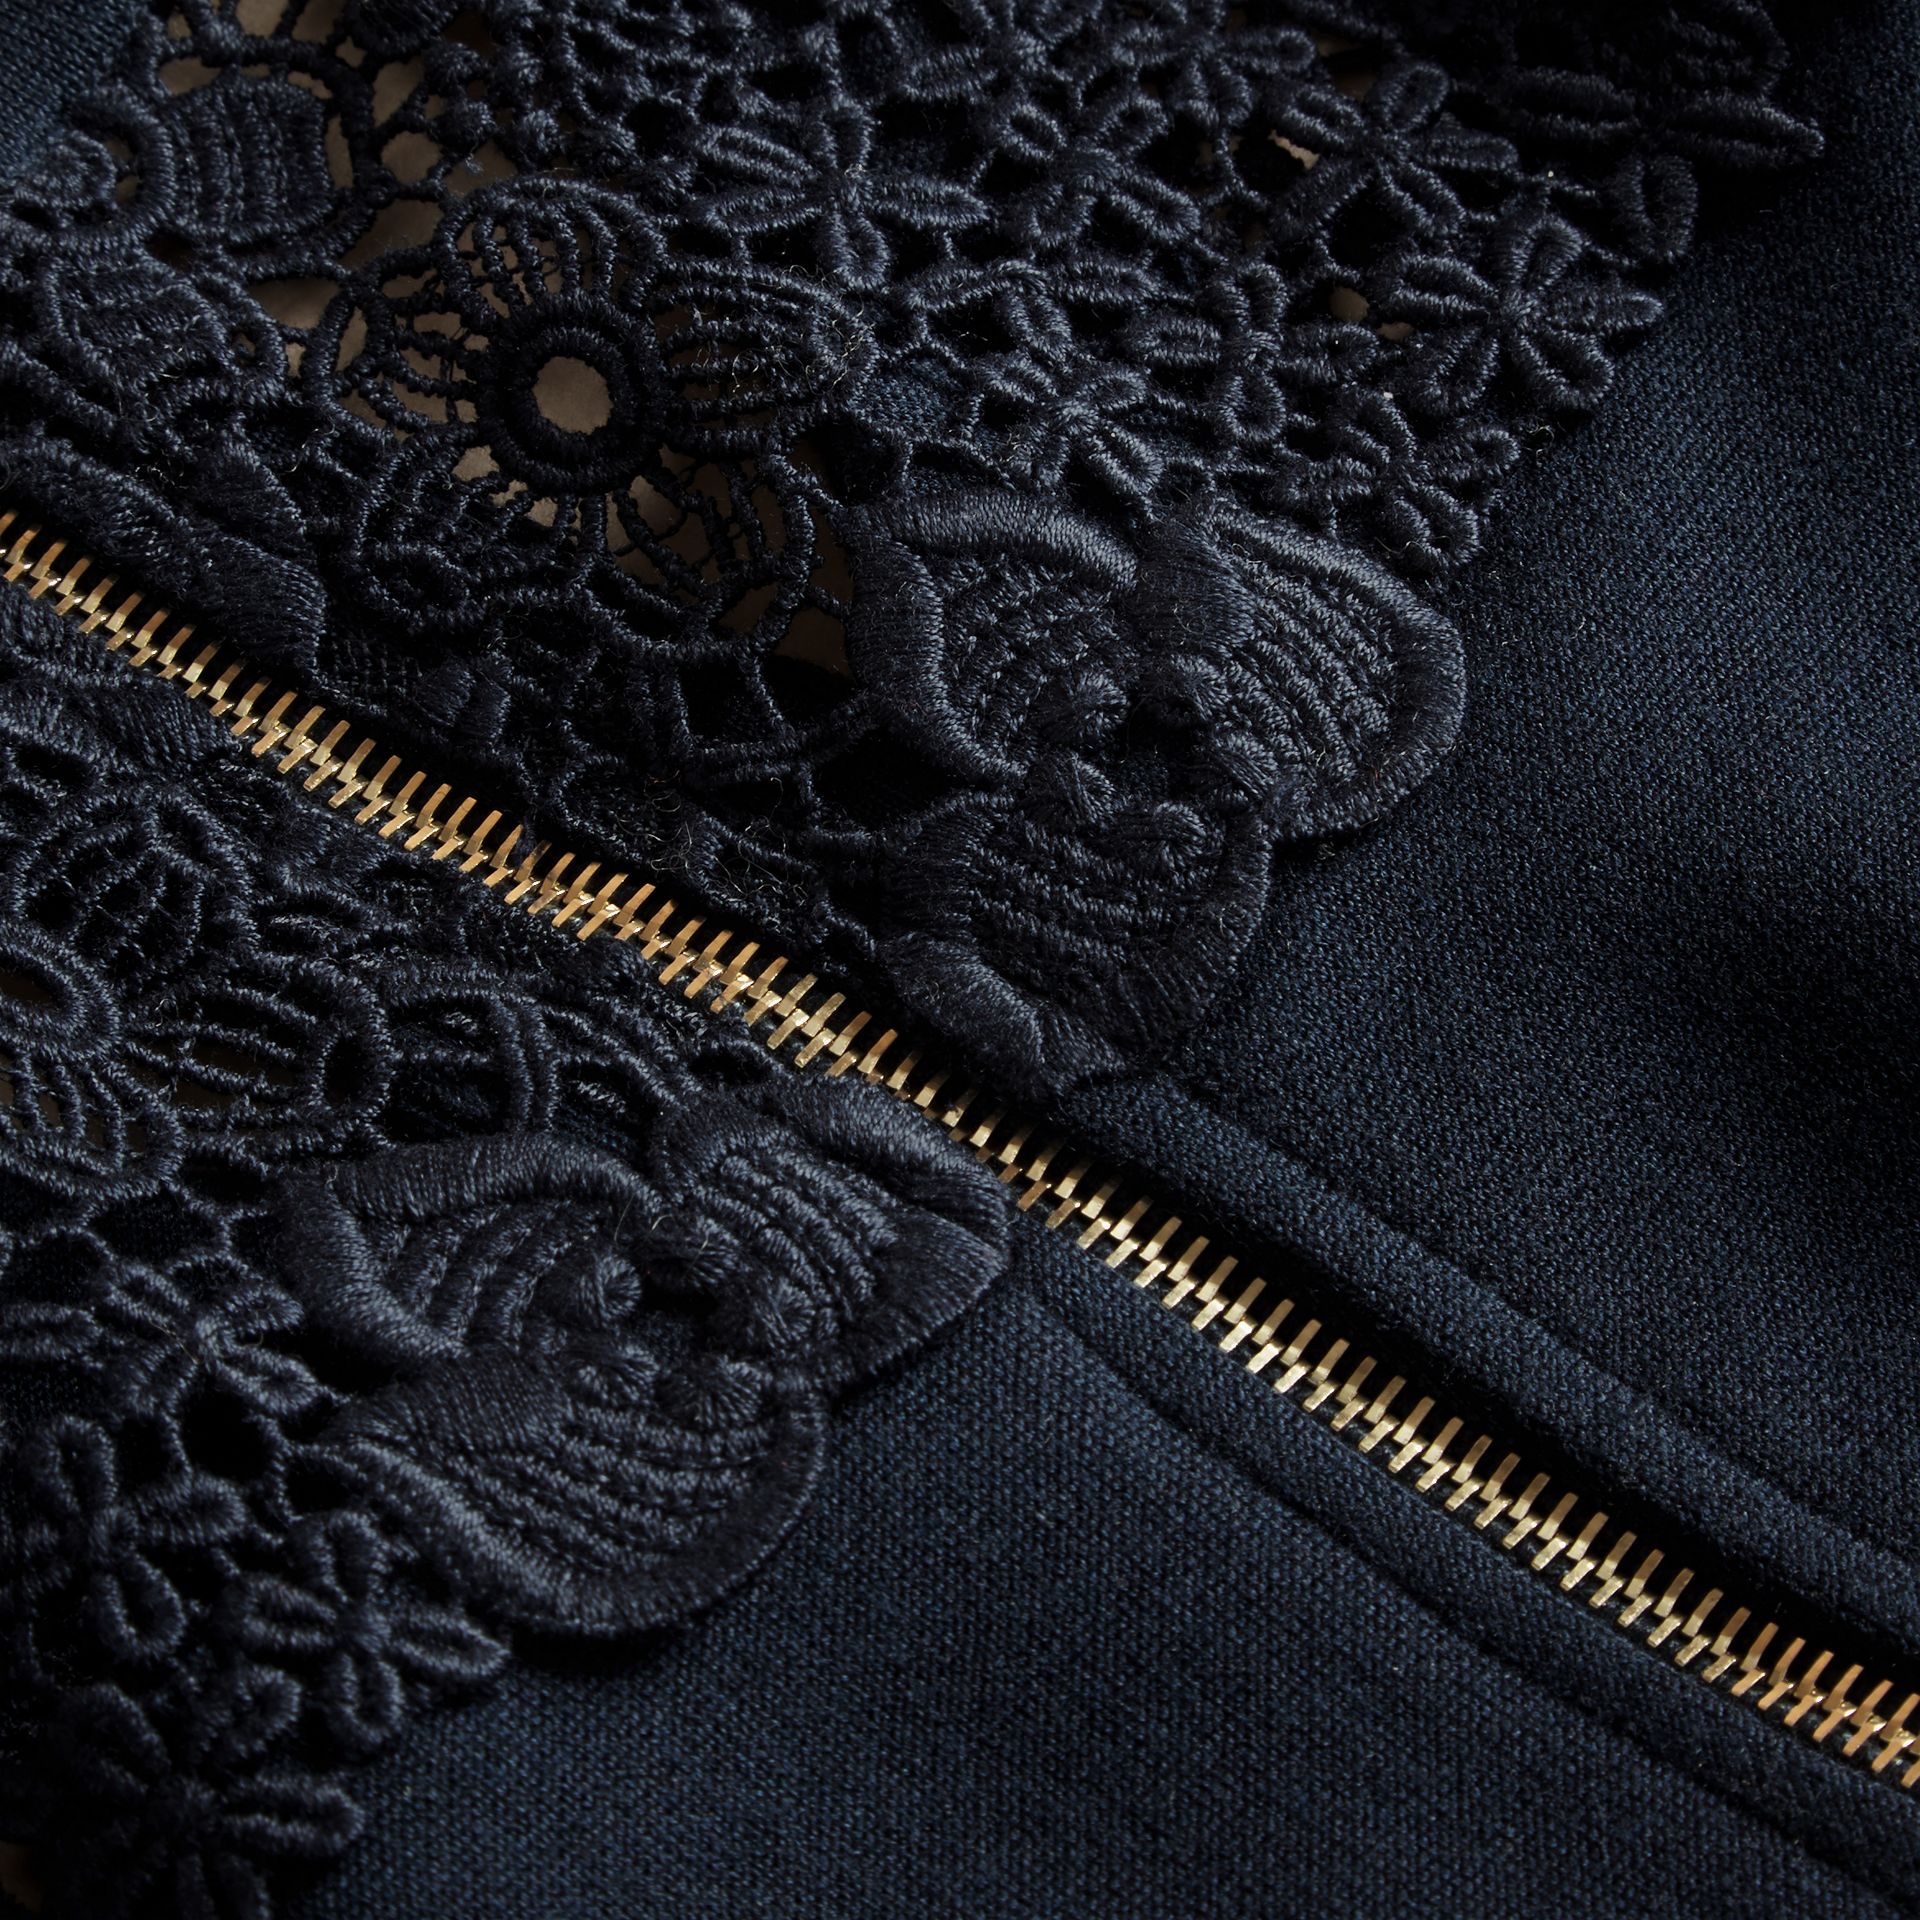 Navy Macramé Lace Detail Silk Blend Dress Navy - gallery image 2